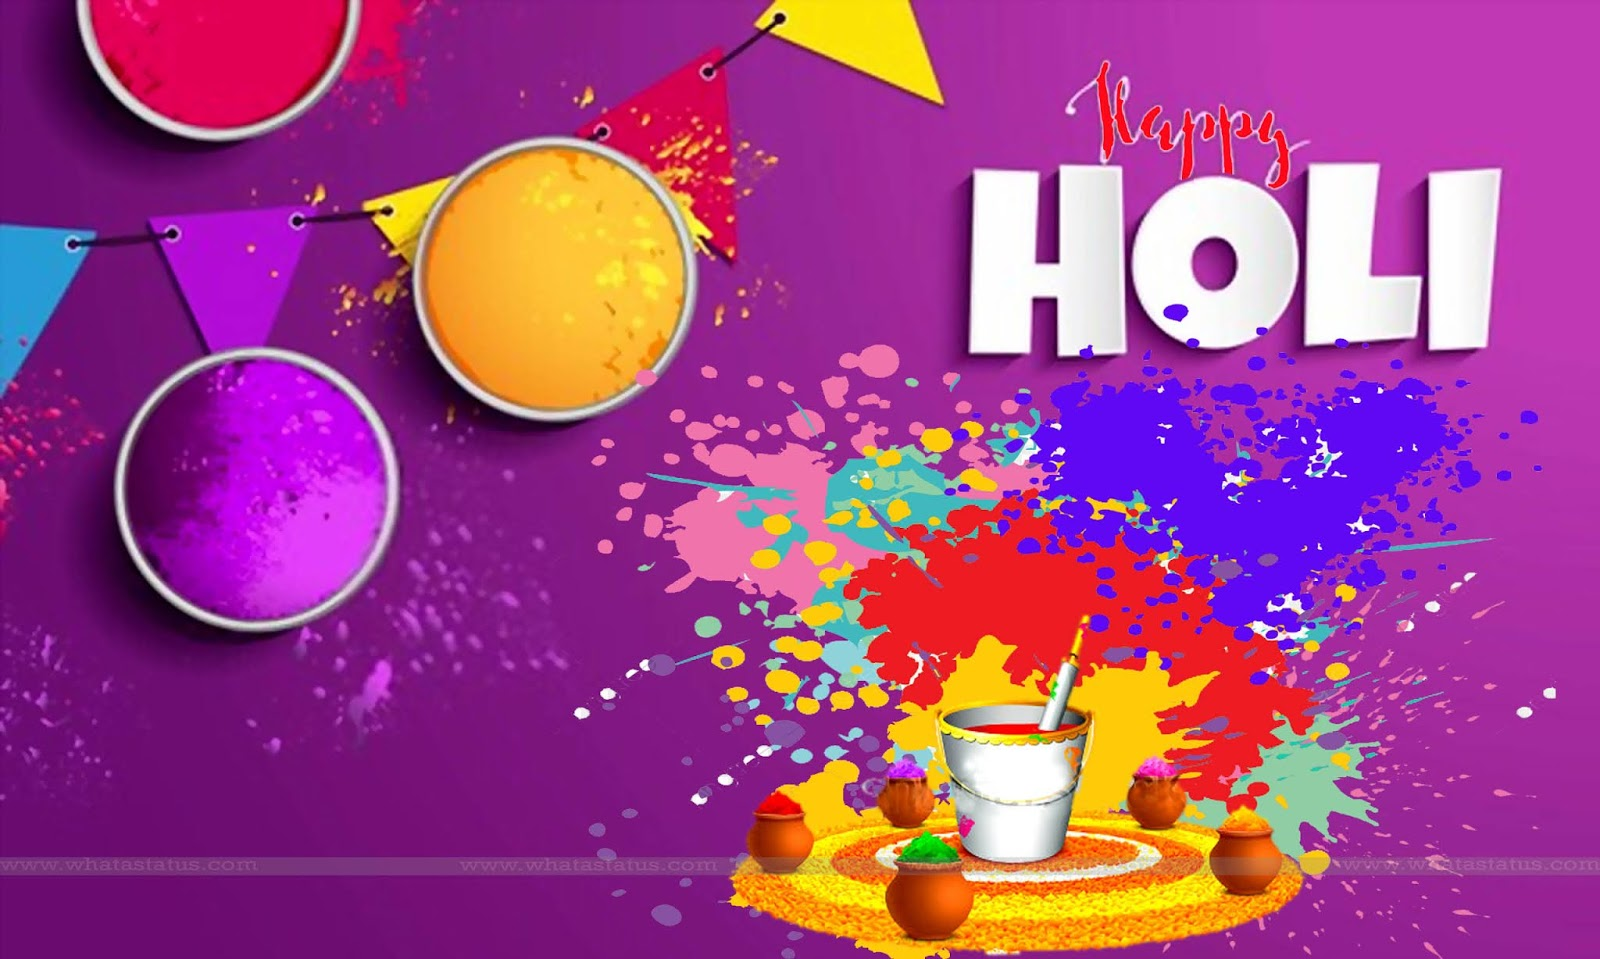 Happy-Holi-Picture